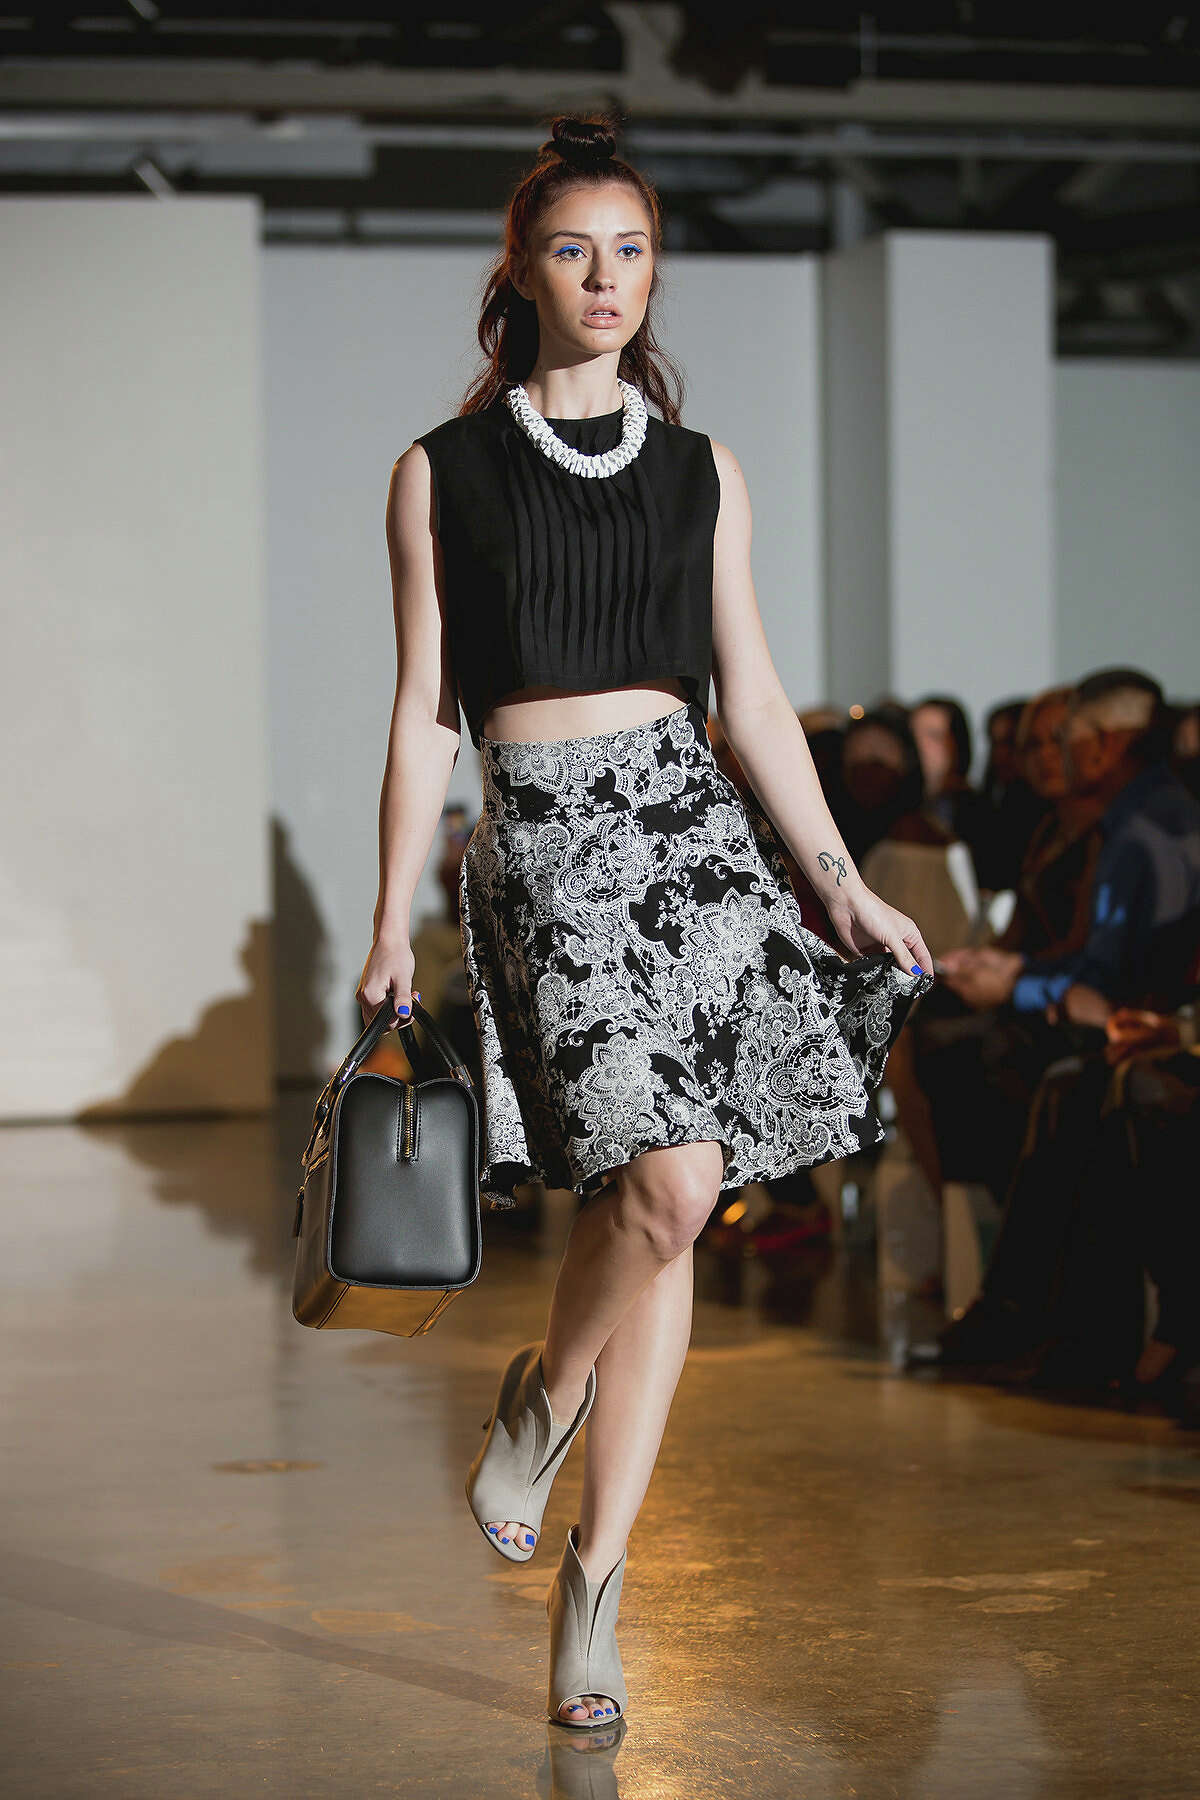 Here's a look from Samantha Plasencia's spring 2015 collection shown during Fashion Week San Antonio. The